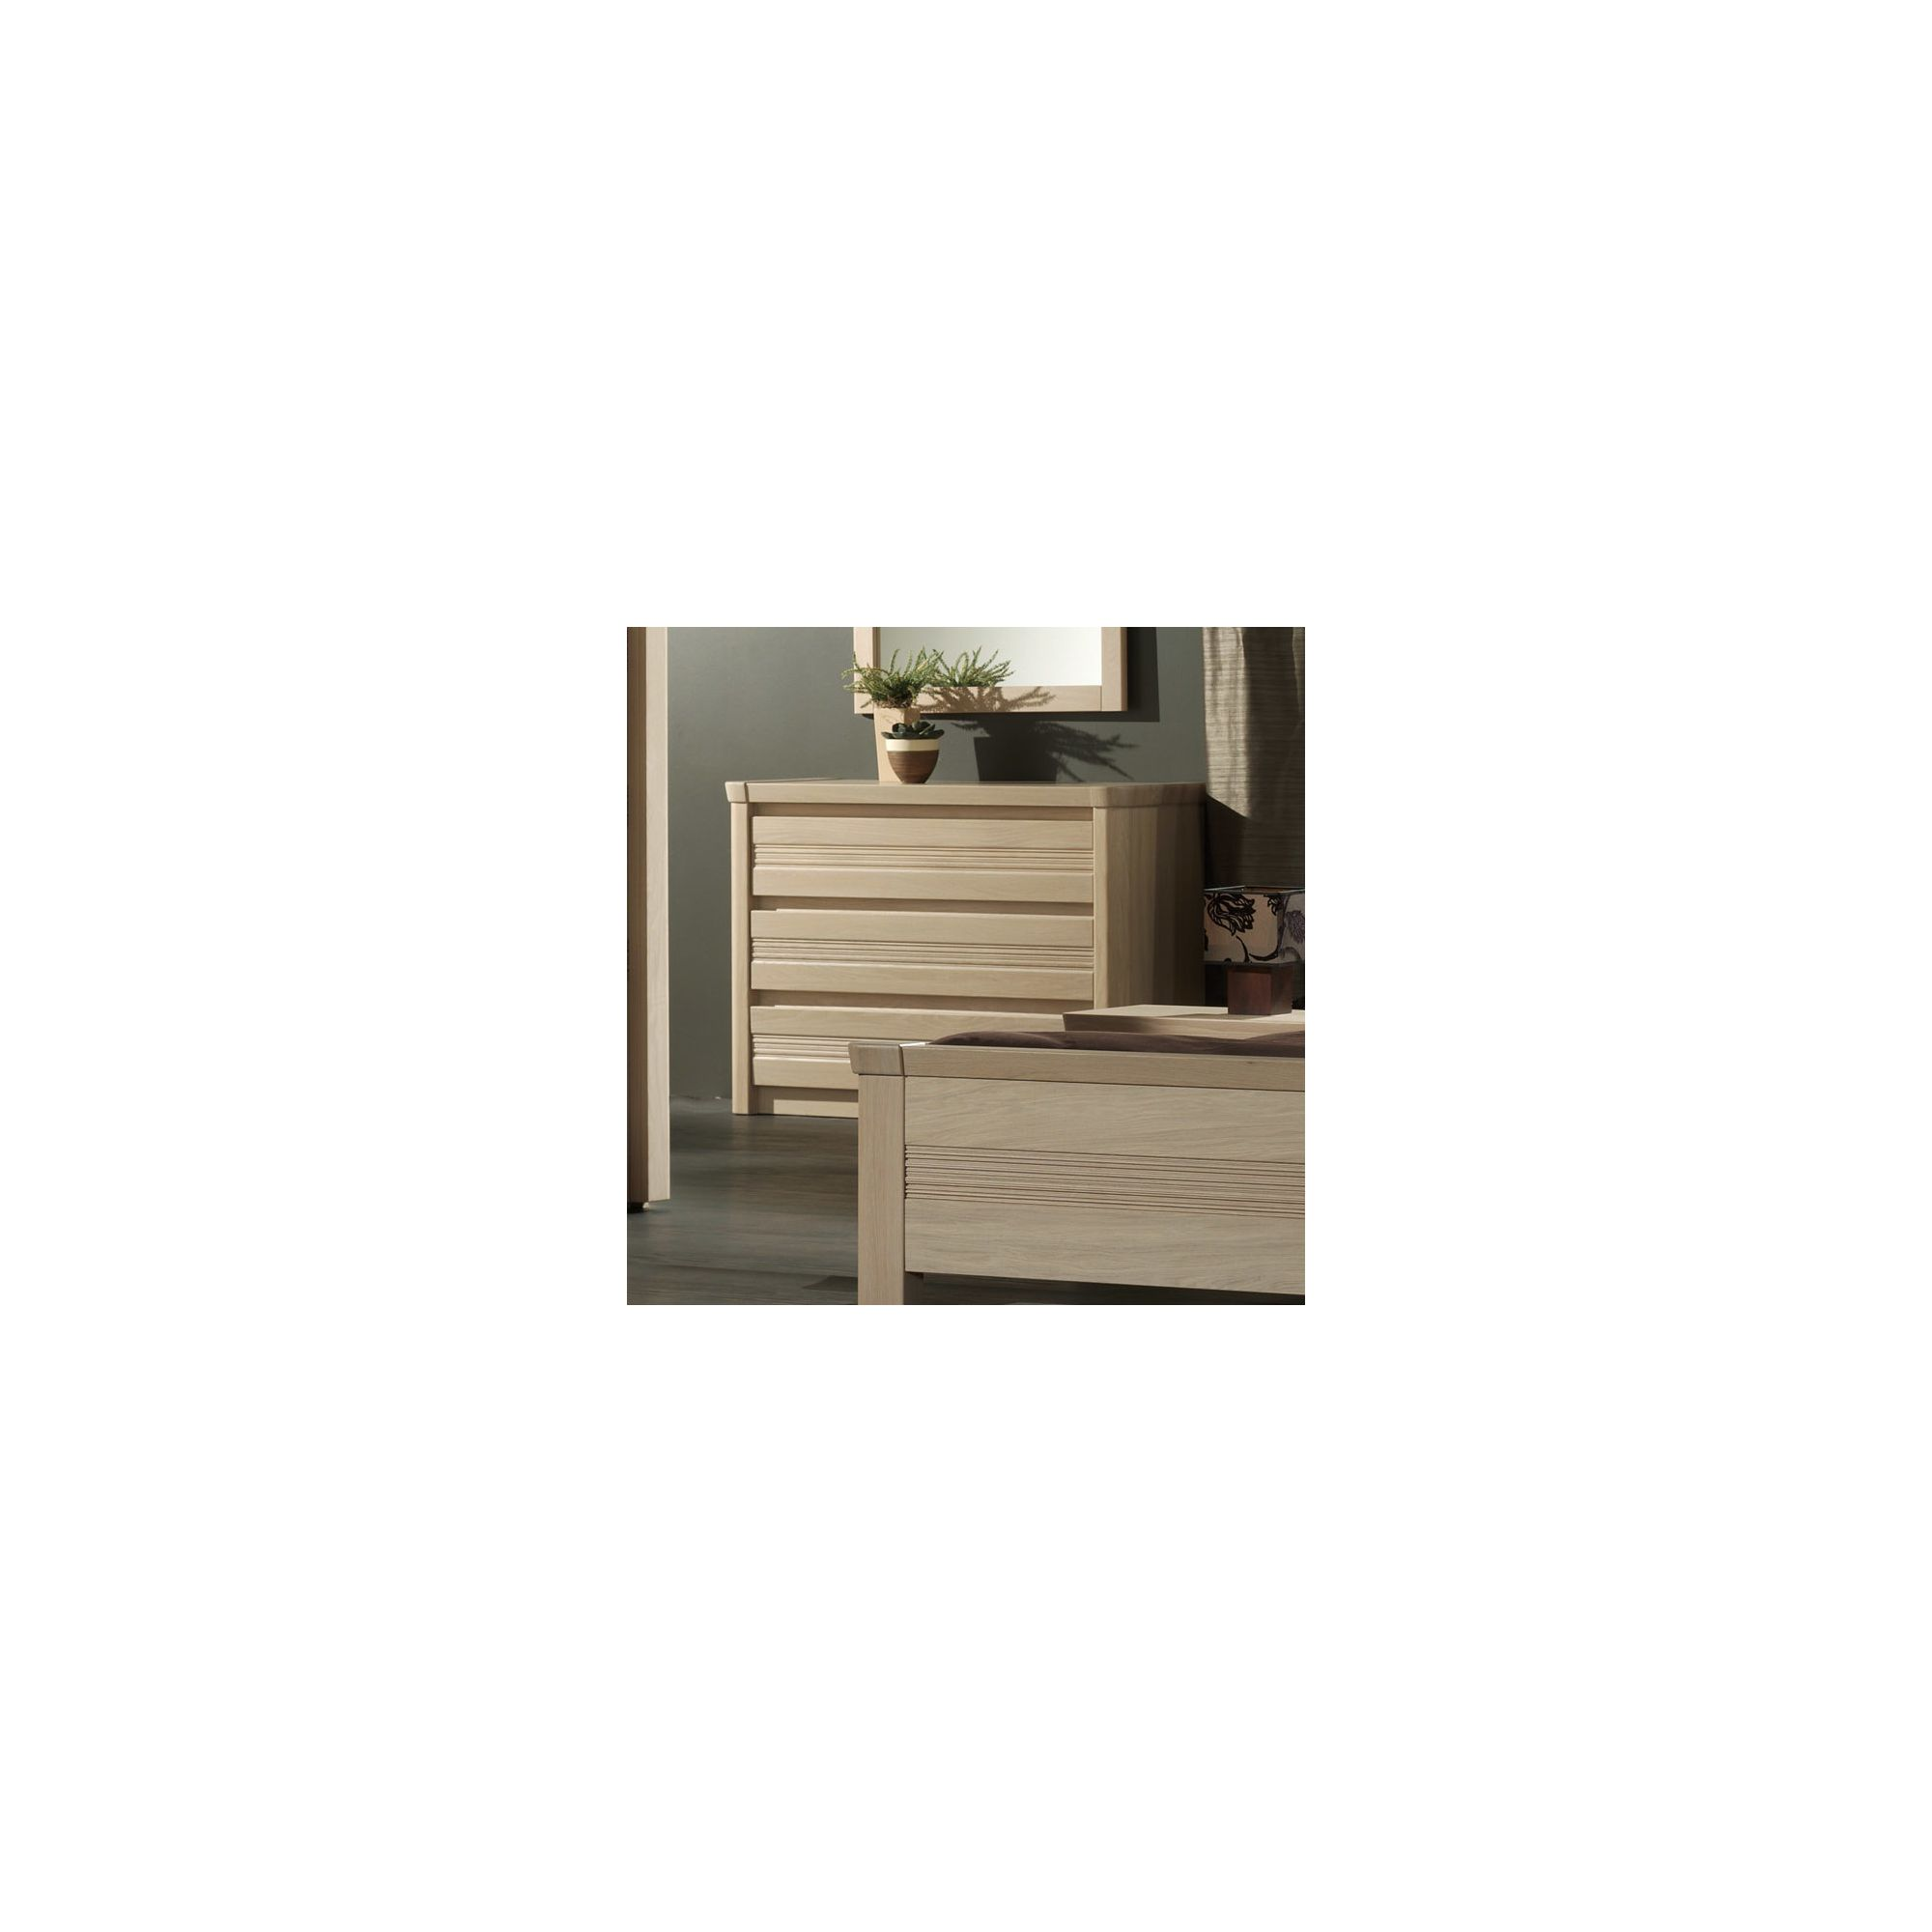 Sleepline Mundo 3 Drawers Chest - Grey Mat Lacquered at Tesco Direct